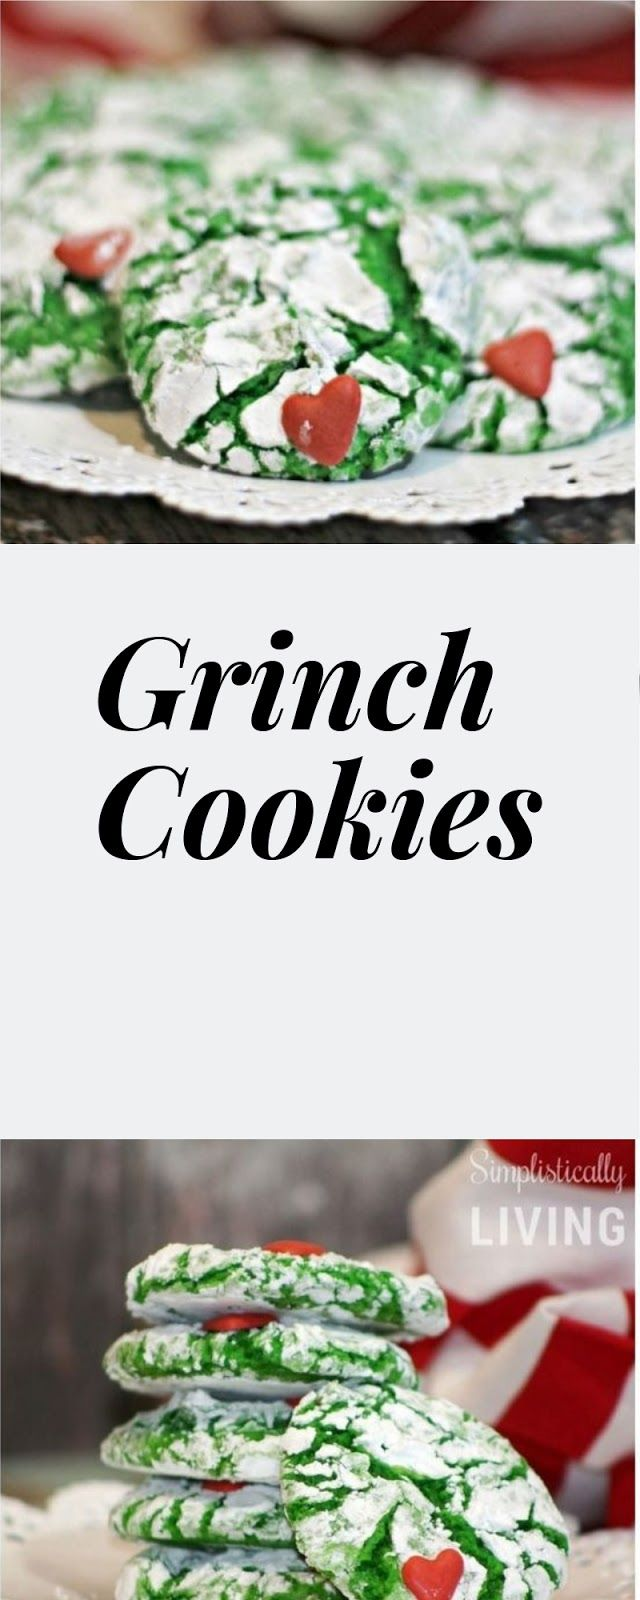 Wavy, Tender, Grinch Cookies #christmas#holidays#holidayrecipes | Recipes #grinchcookies